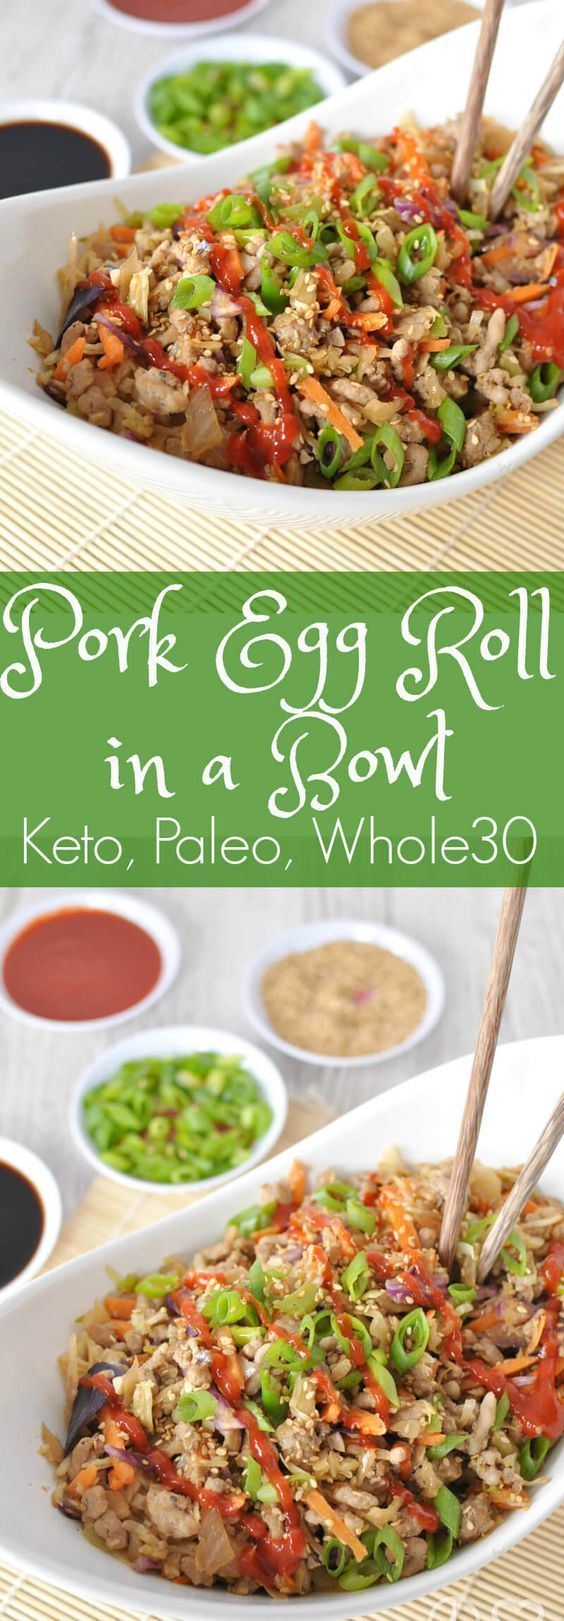 Egg Roll in a Bowl – Paleo, Low Carb, Whole30 Paleo Pork Egg Roll in a Bowl - Low Carb, Keto   Peace Love and Low CarbPaleo Pork Egg Roll in a Bowl - Low Carb, Keto   Peace Love and Low Carb